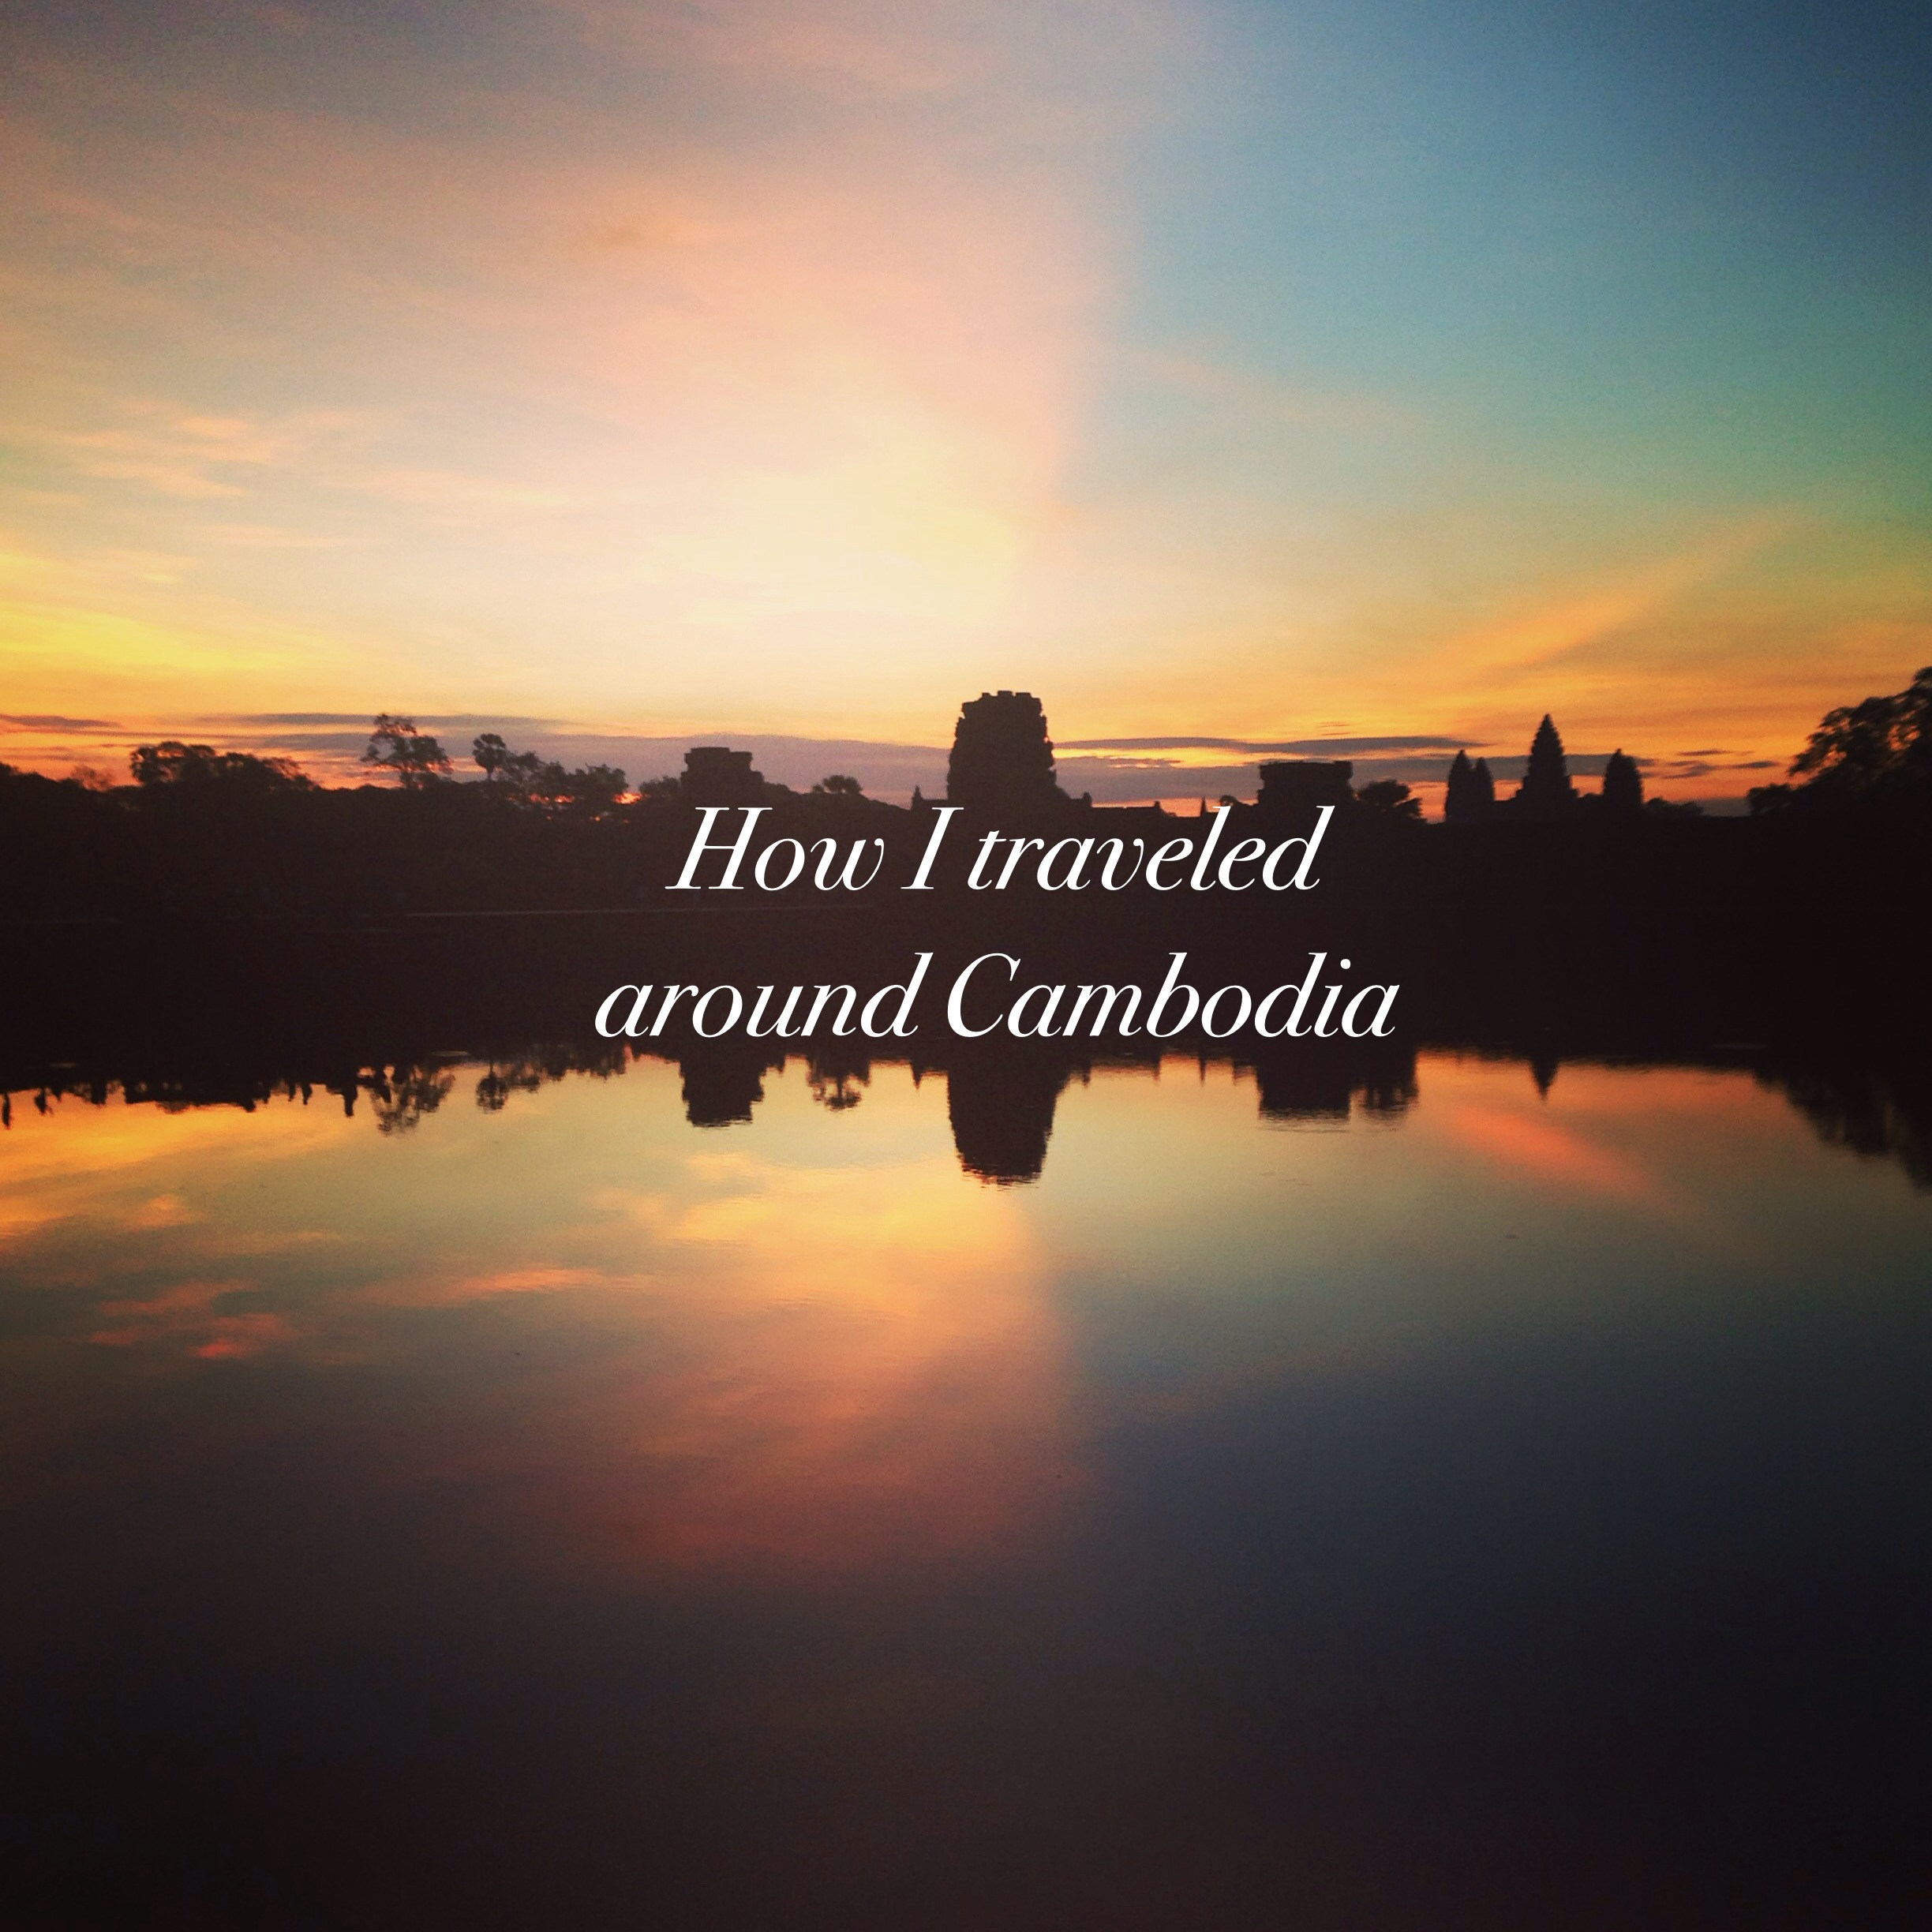 Tips on traveling around Cambodia